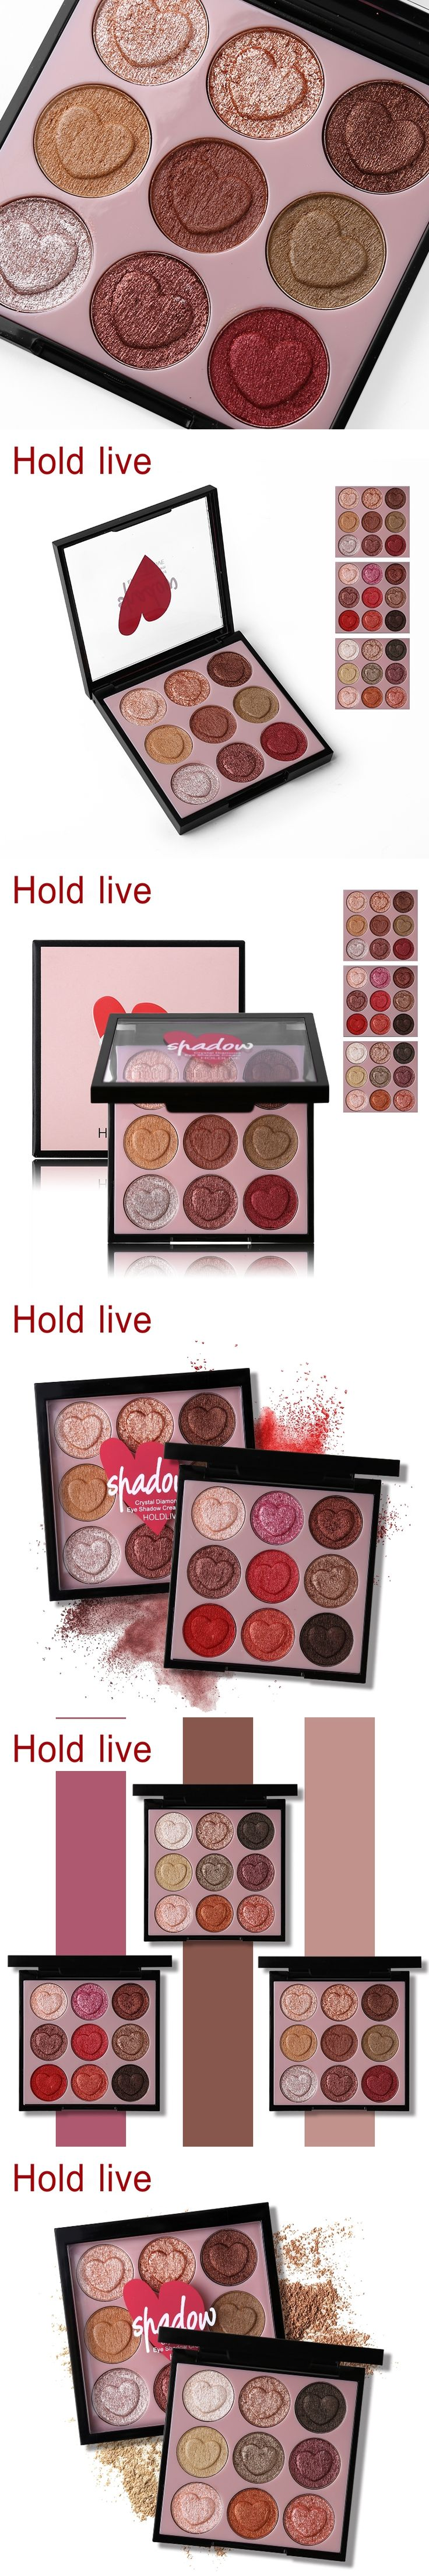 HOLD LIVE 9 Colors Heart Shaped Shimmer Eyeshadow Palette Glitter Eye Shadow Powder Pigment Smooth Warm Natural Nude Cosmetics